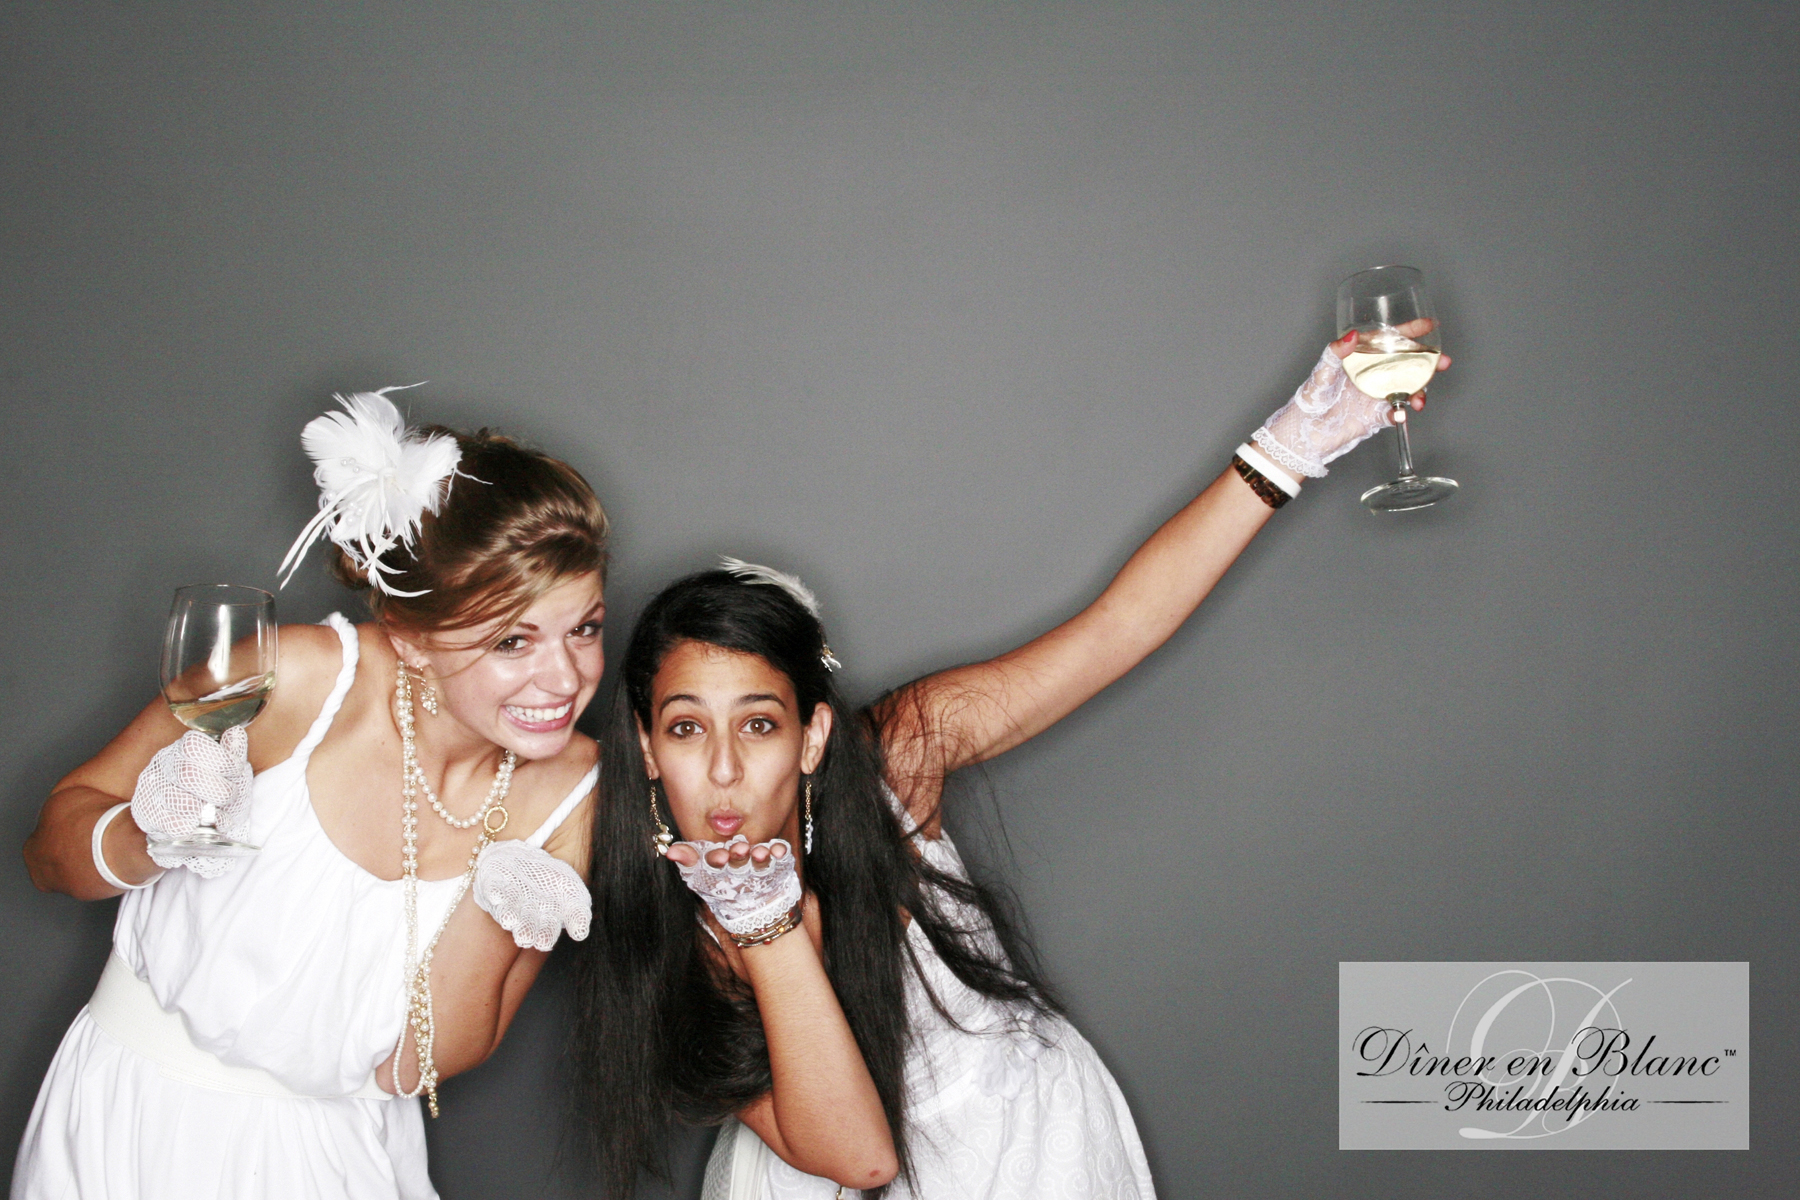 Philadelphia photo booth Diner en Blanc blowing kisses